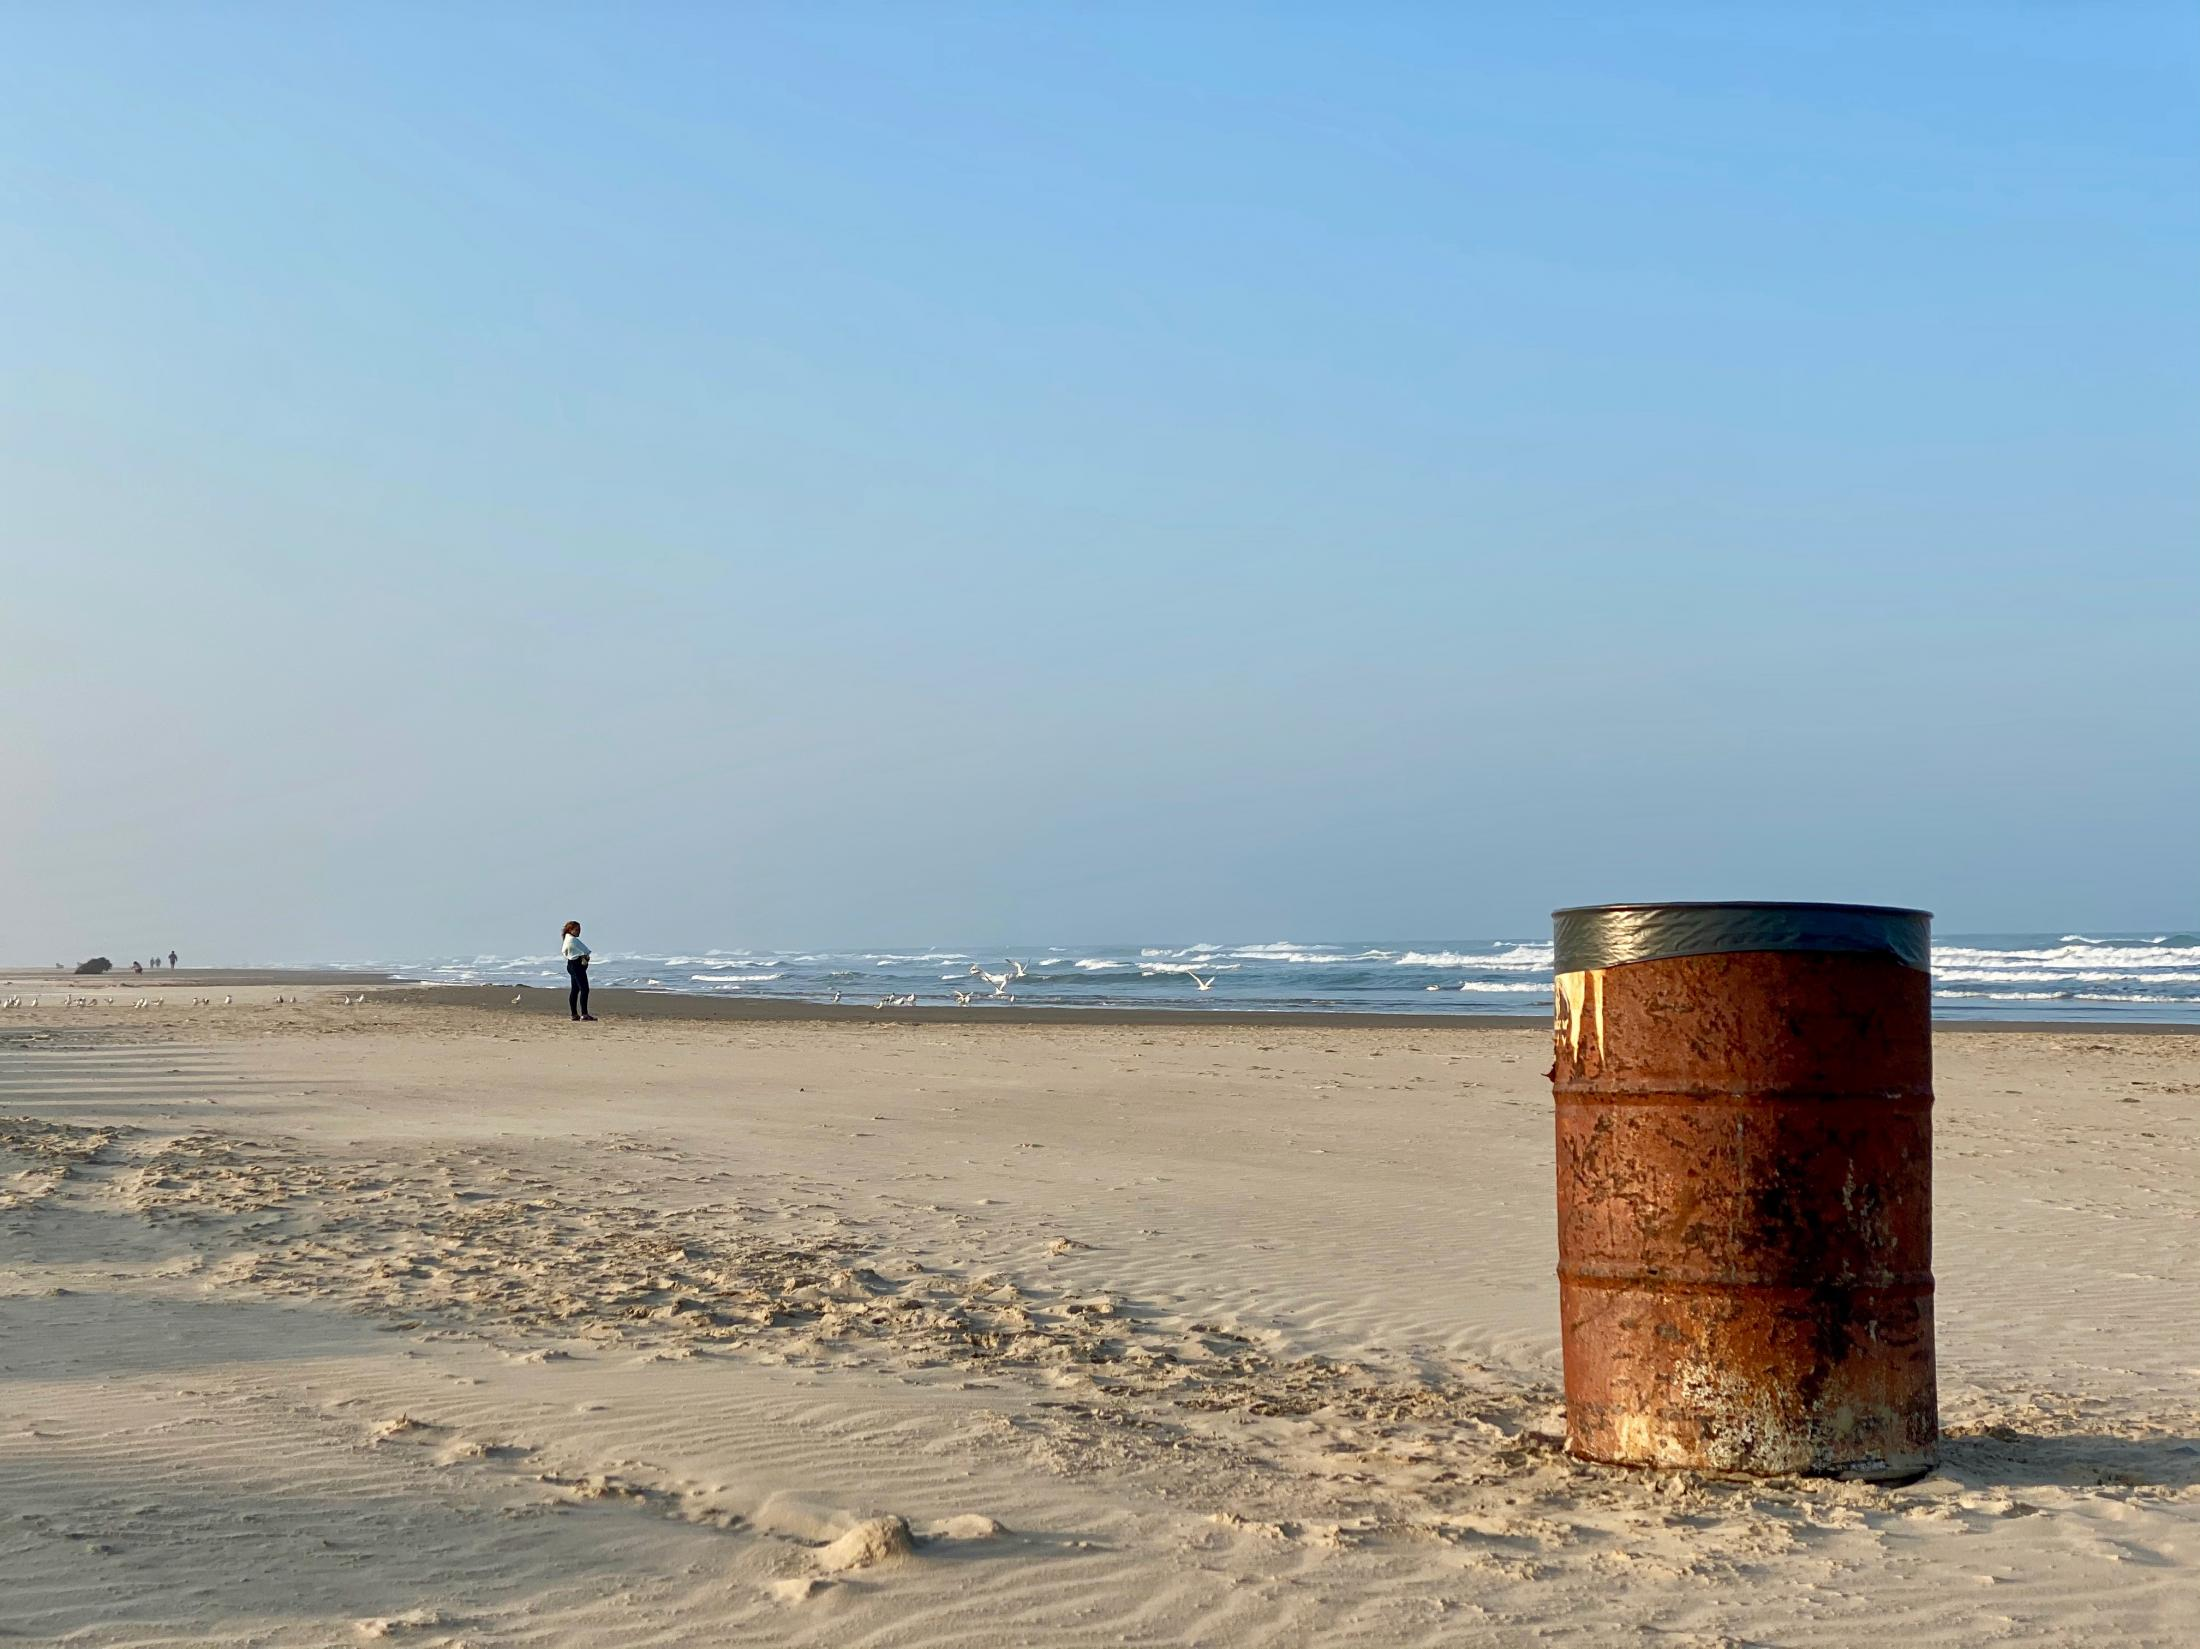 Playa Miramar, Tamaulipas, México. 2020. A trash bin sits on the sand while at a distance a lady gazes the water of the Gulf of Mexico. I was spending the windy afternoon at the beach with my girlfriend. We listened to our favorite music, drank beer, and had a henna tattoo of a sun drawnon one of each other's wrists.